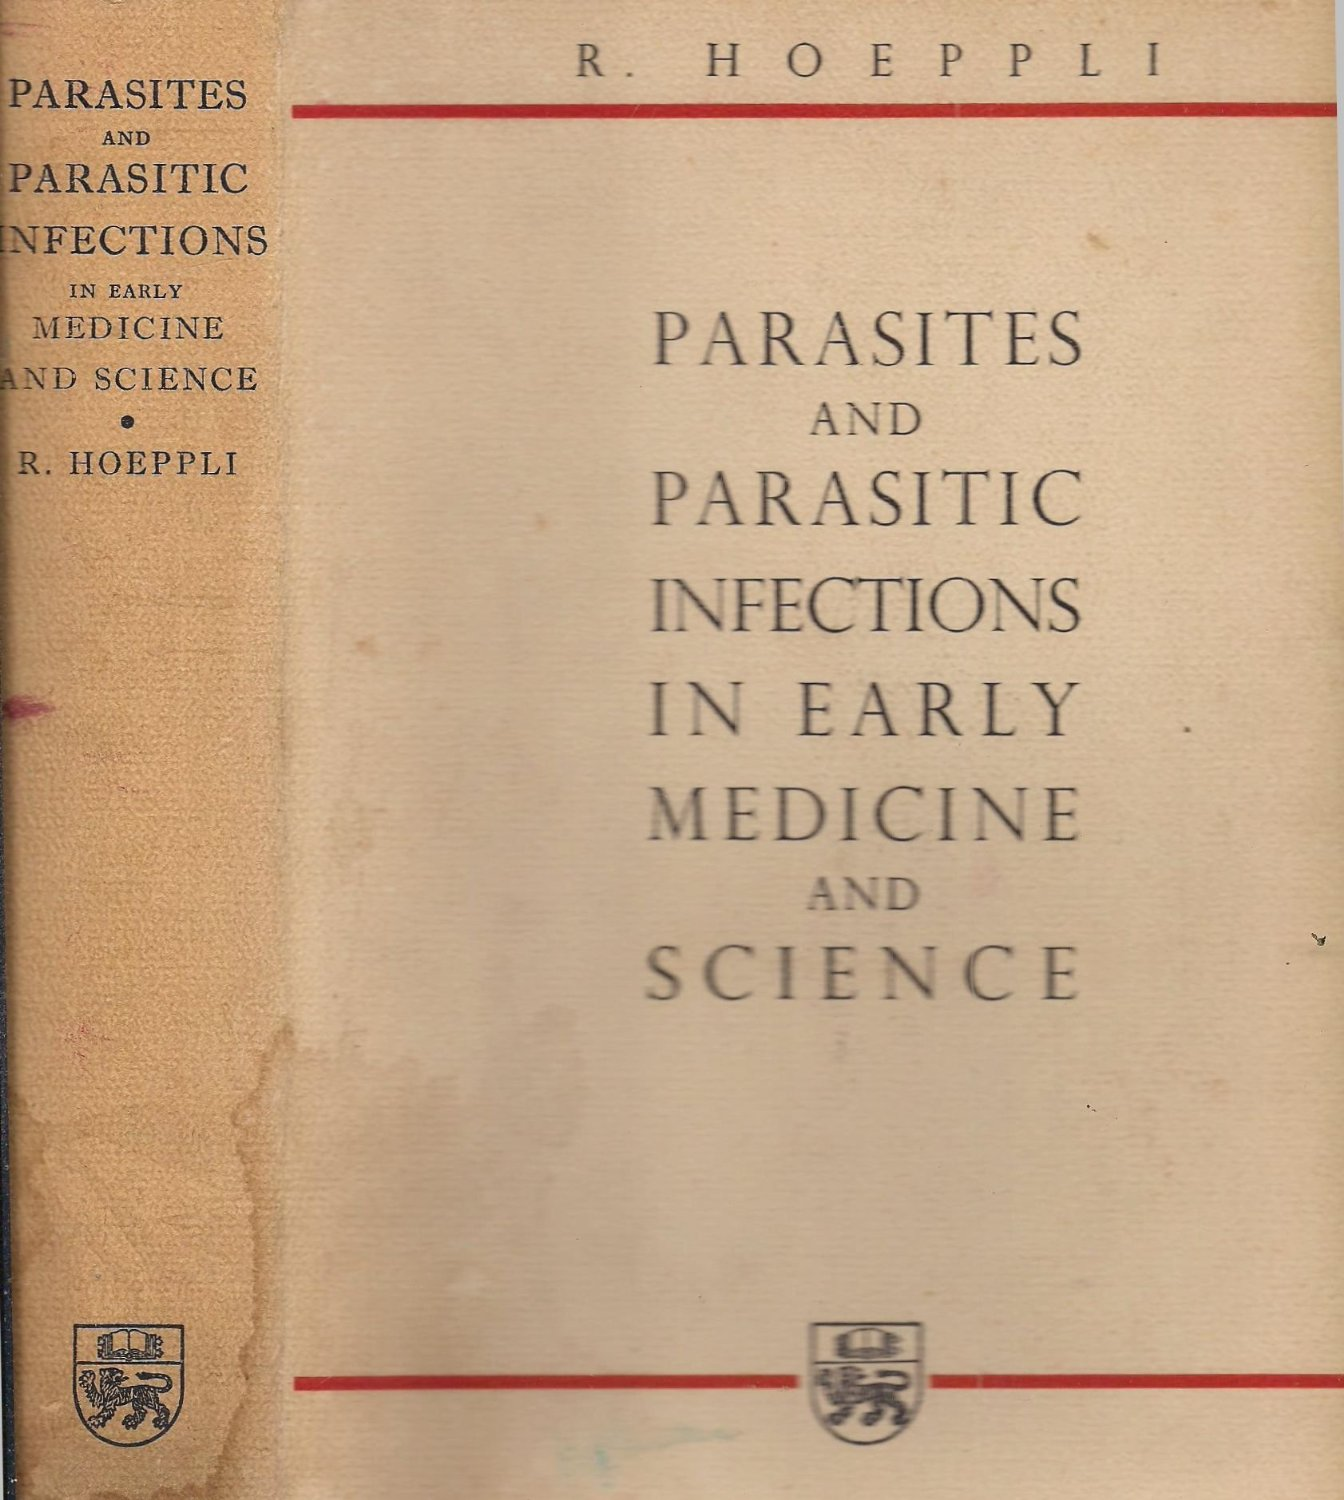 Parasites and Parasitic Infections in Early Medicine and Science